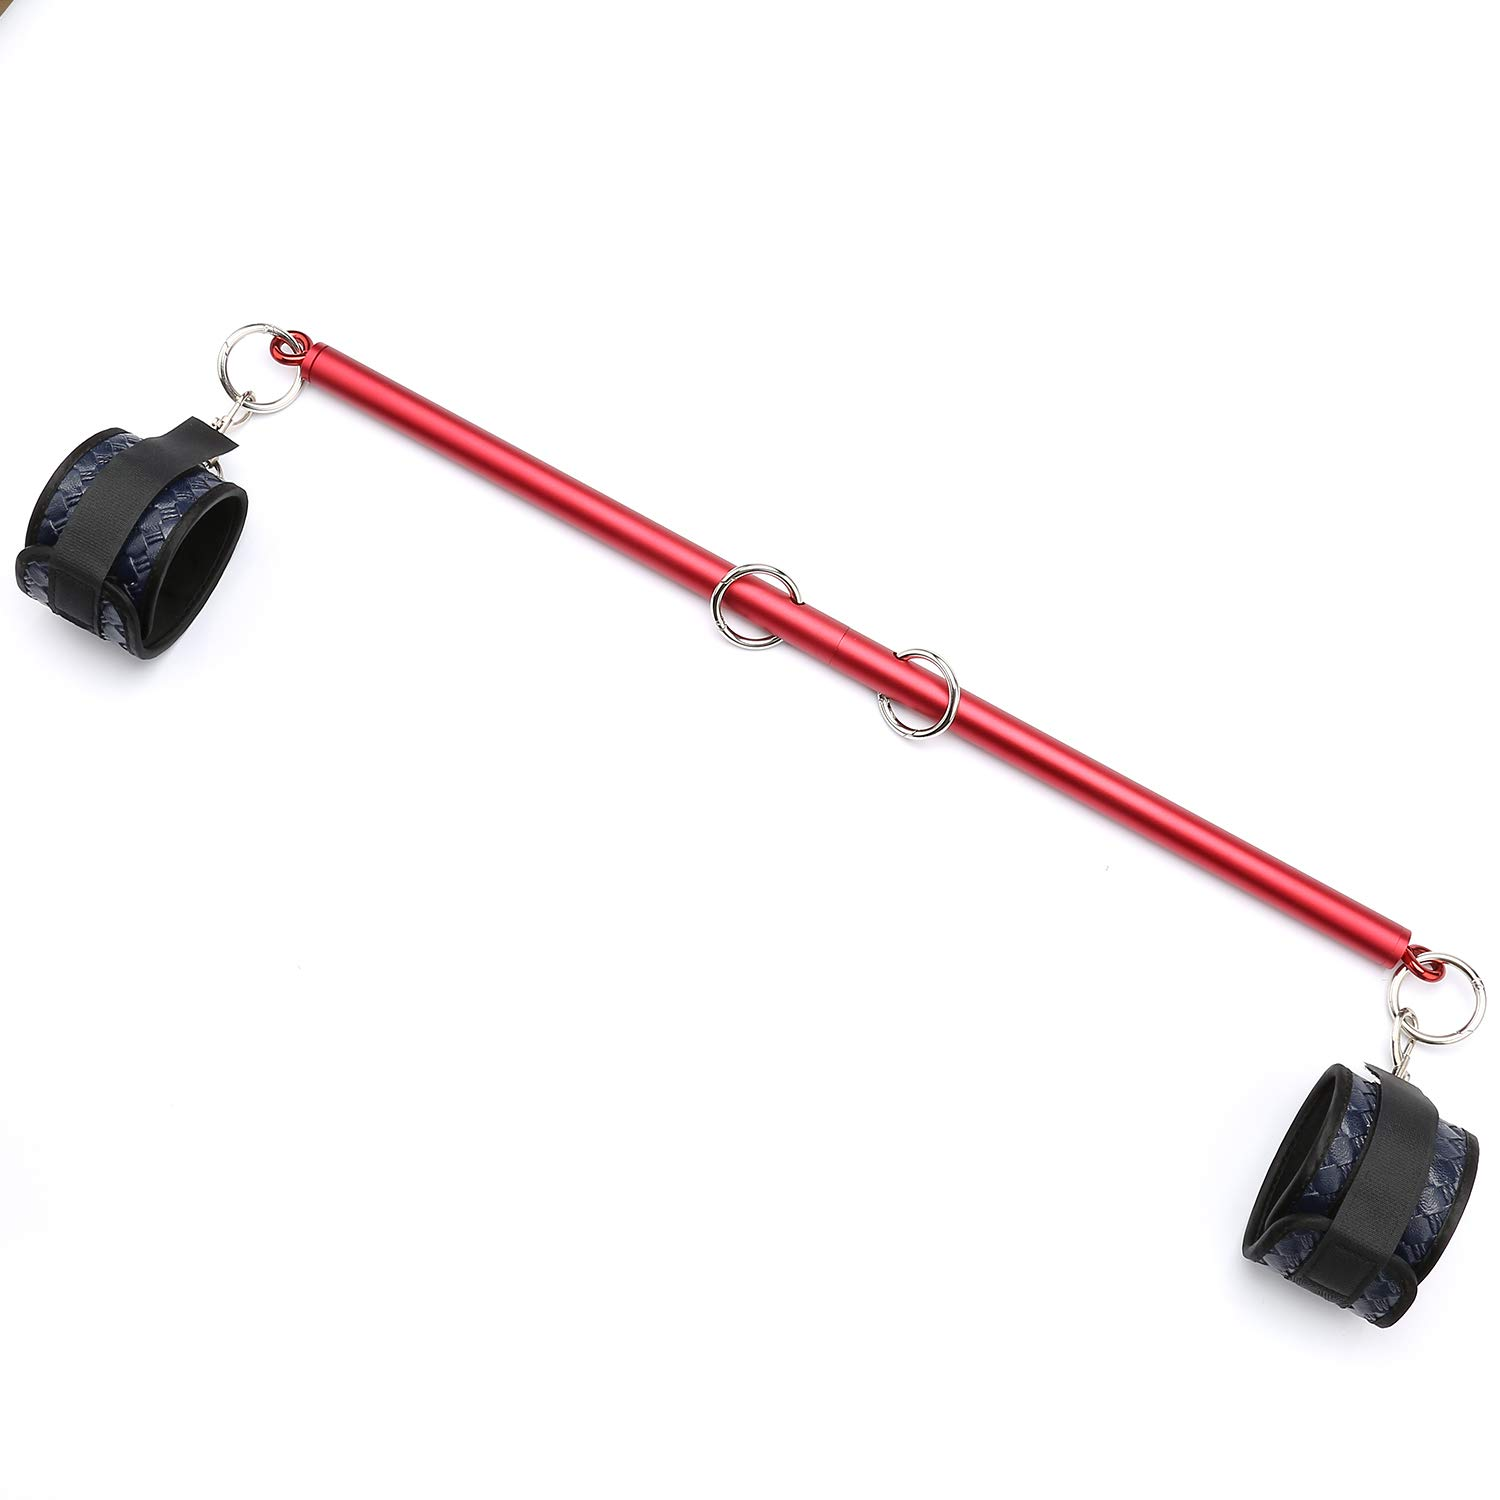 PKBQUEEN Expandable Aluminum Alloy Frosted Red Spreader Bar with Adjustable Blue Straps of Yoga